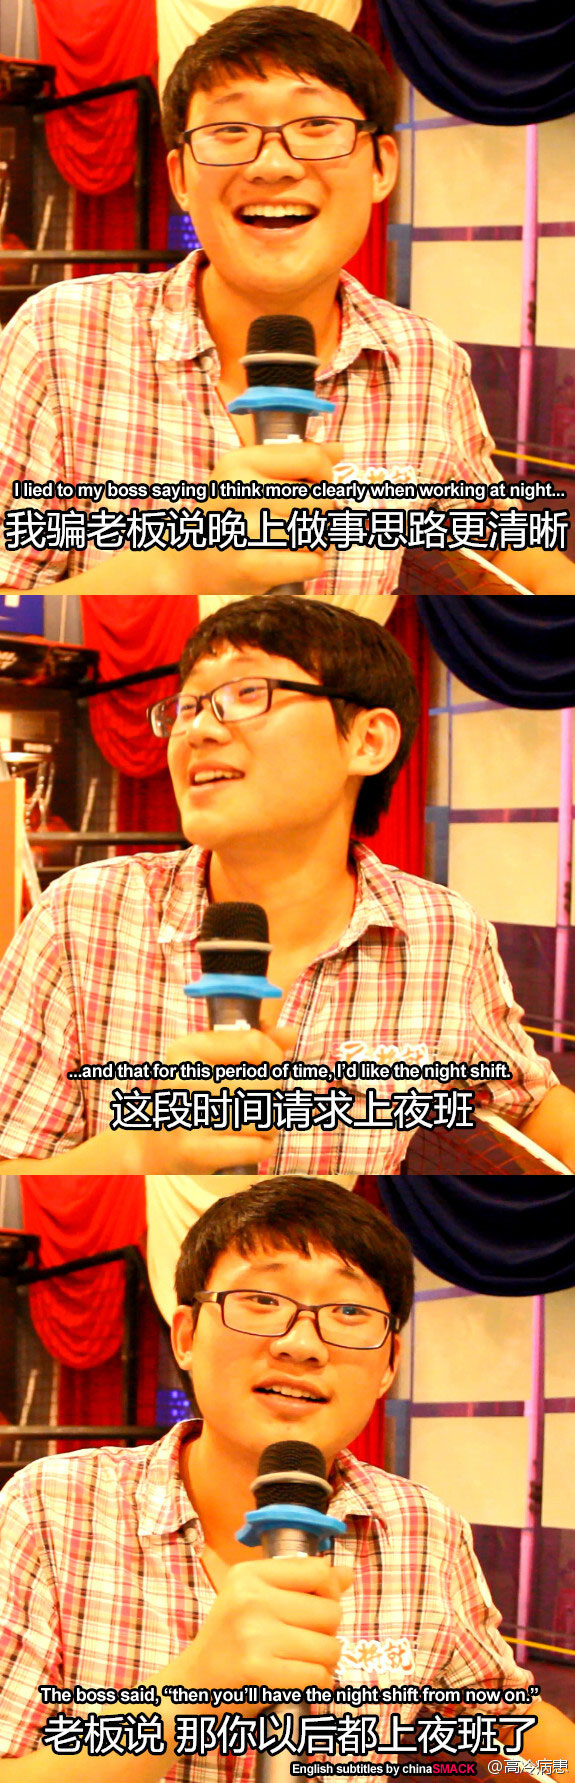 chinese-netizen-excuses-for-bosses-wives-to-watch-world-cup-06-night-shift-english-subtitles